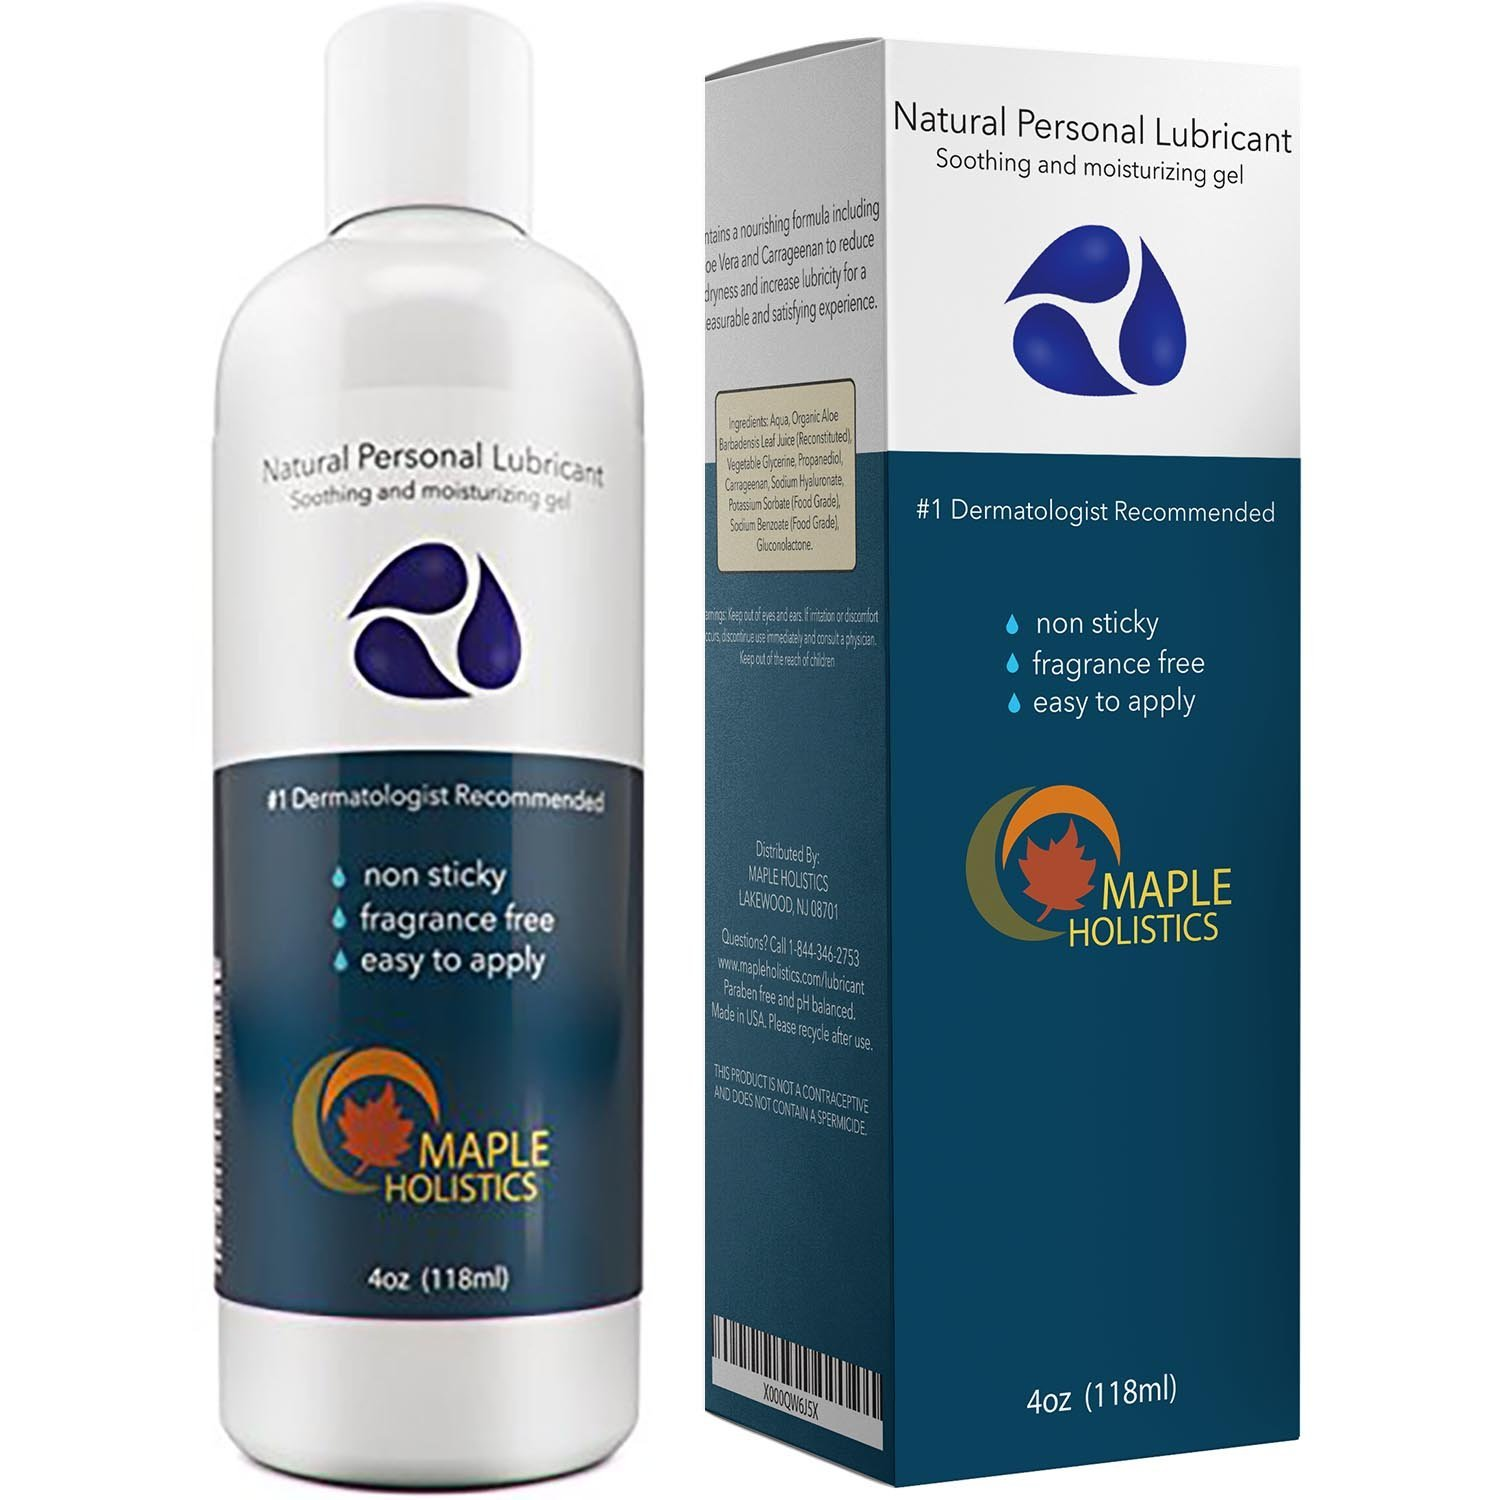 Natural Personal Lubricant For Sensitive Skin